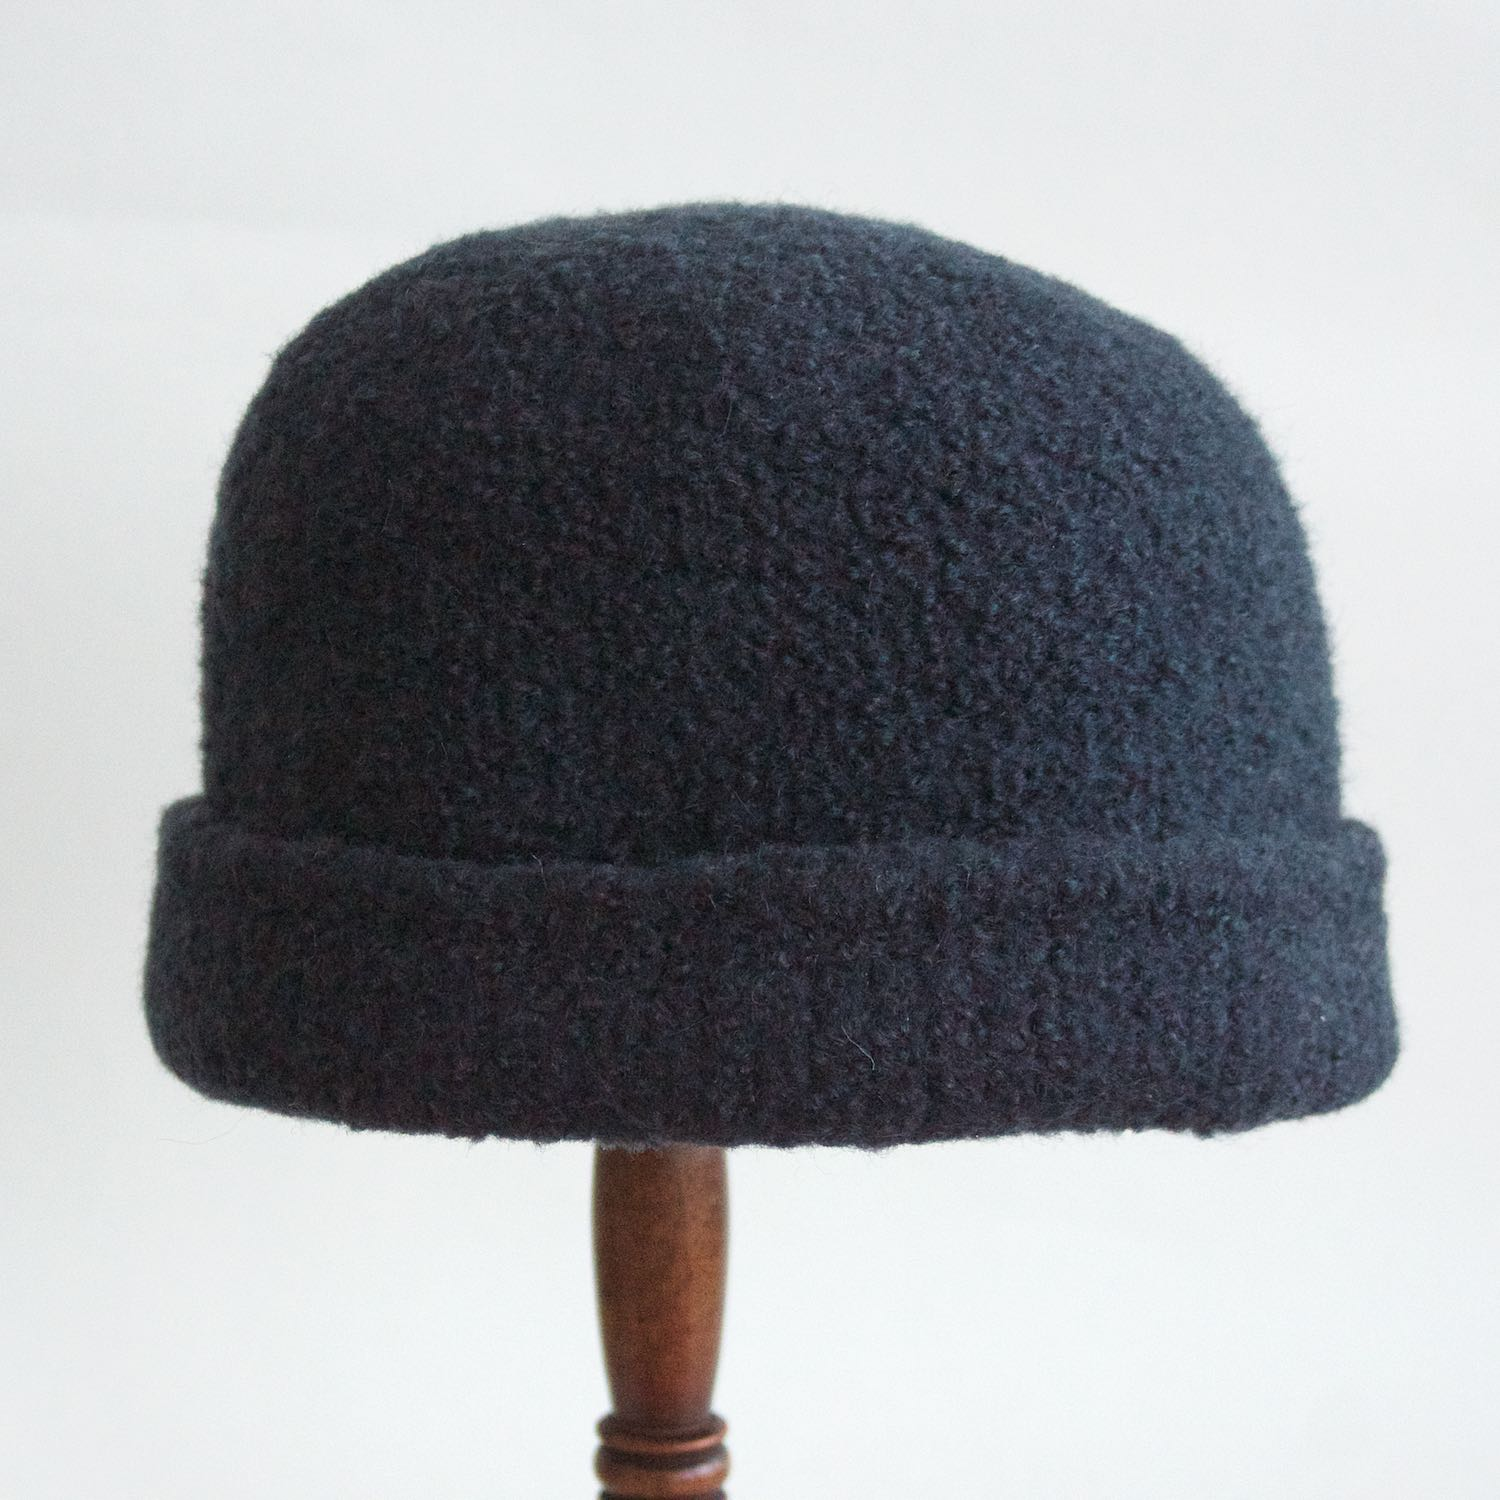 Lynn's Lids unisex felted watch cap